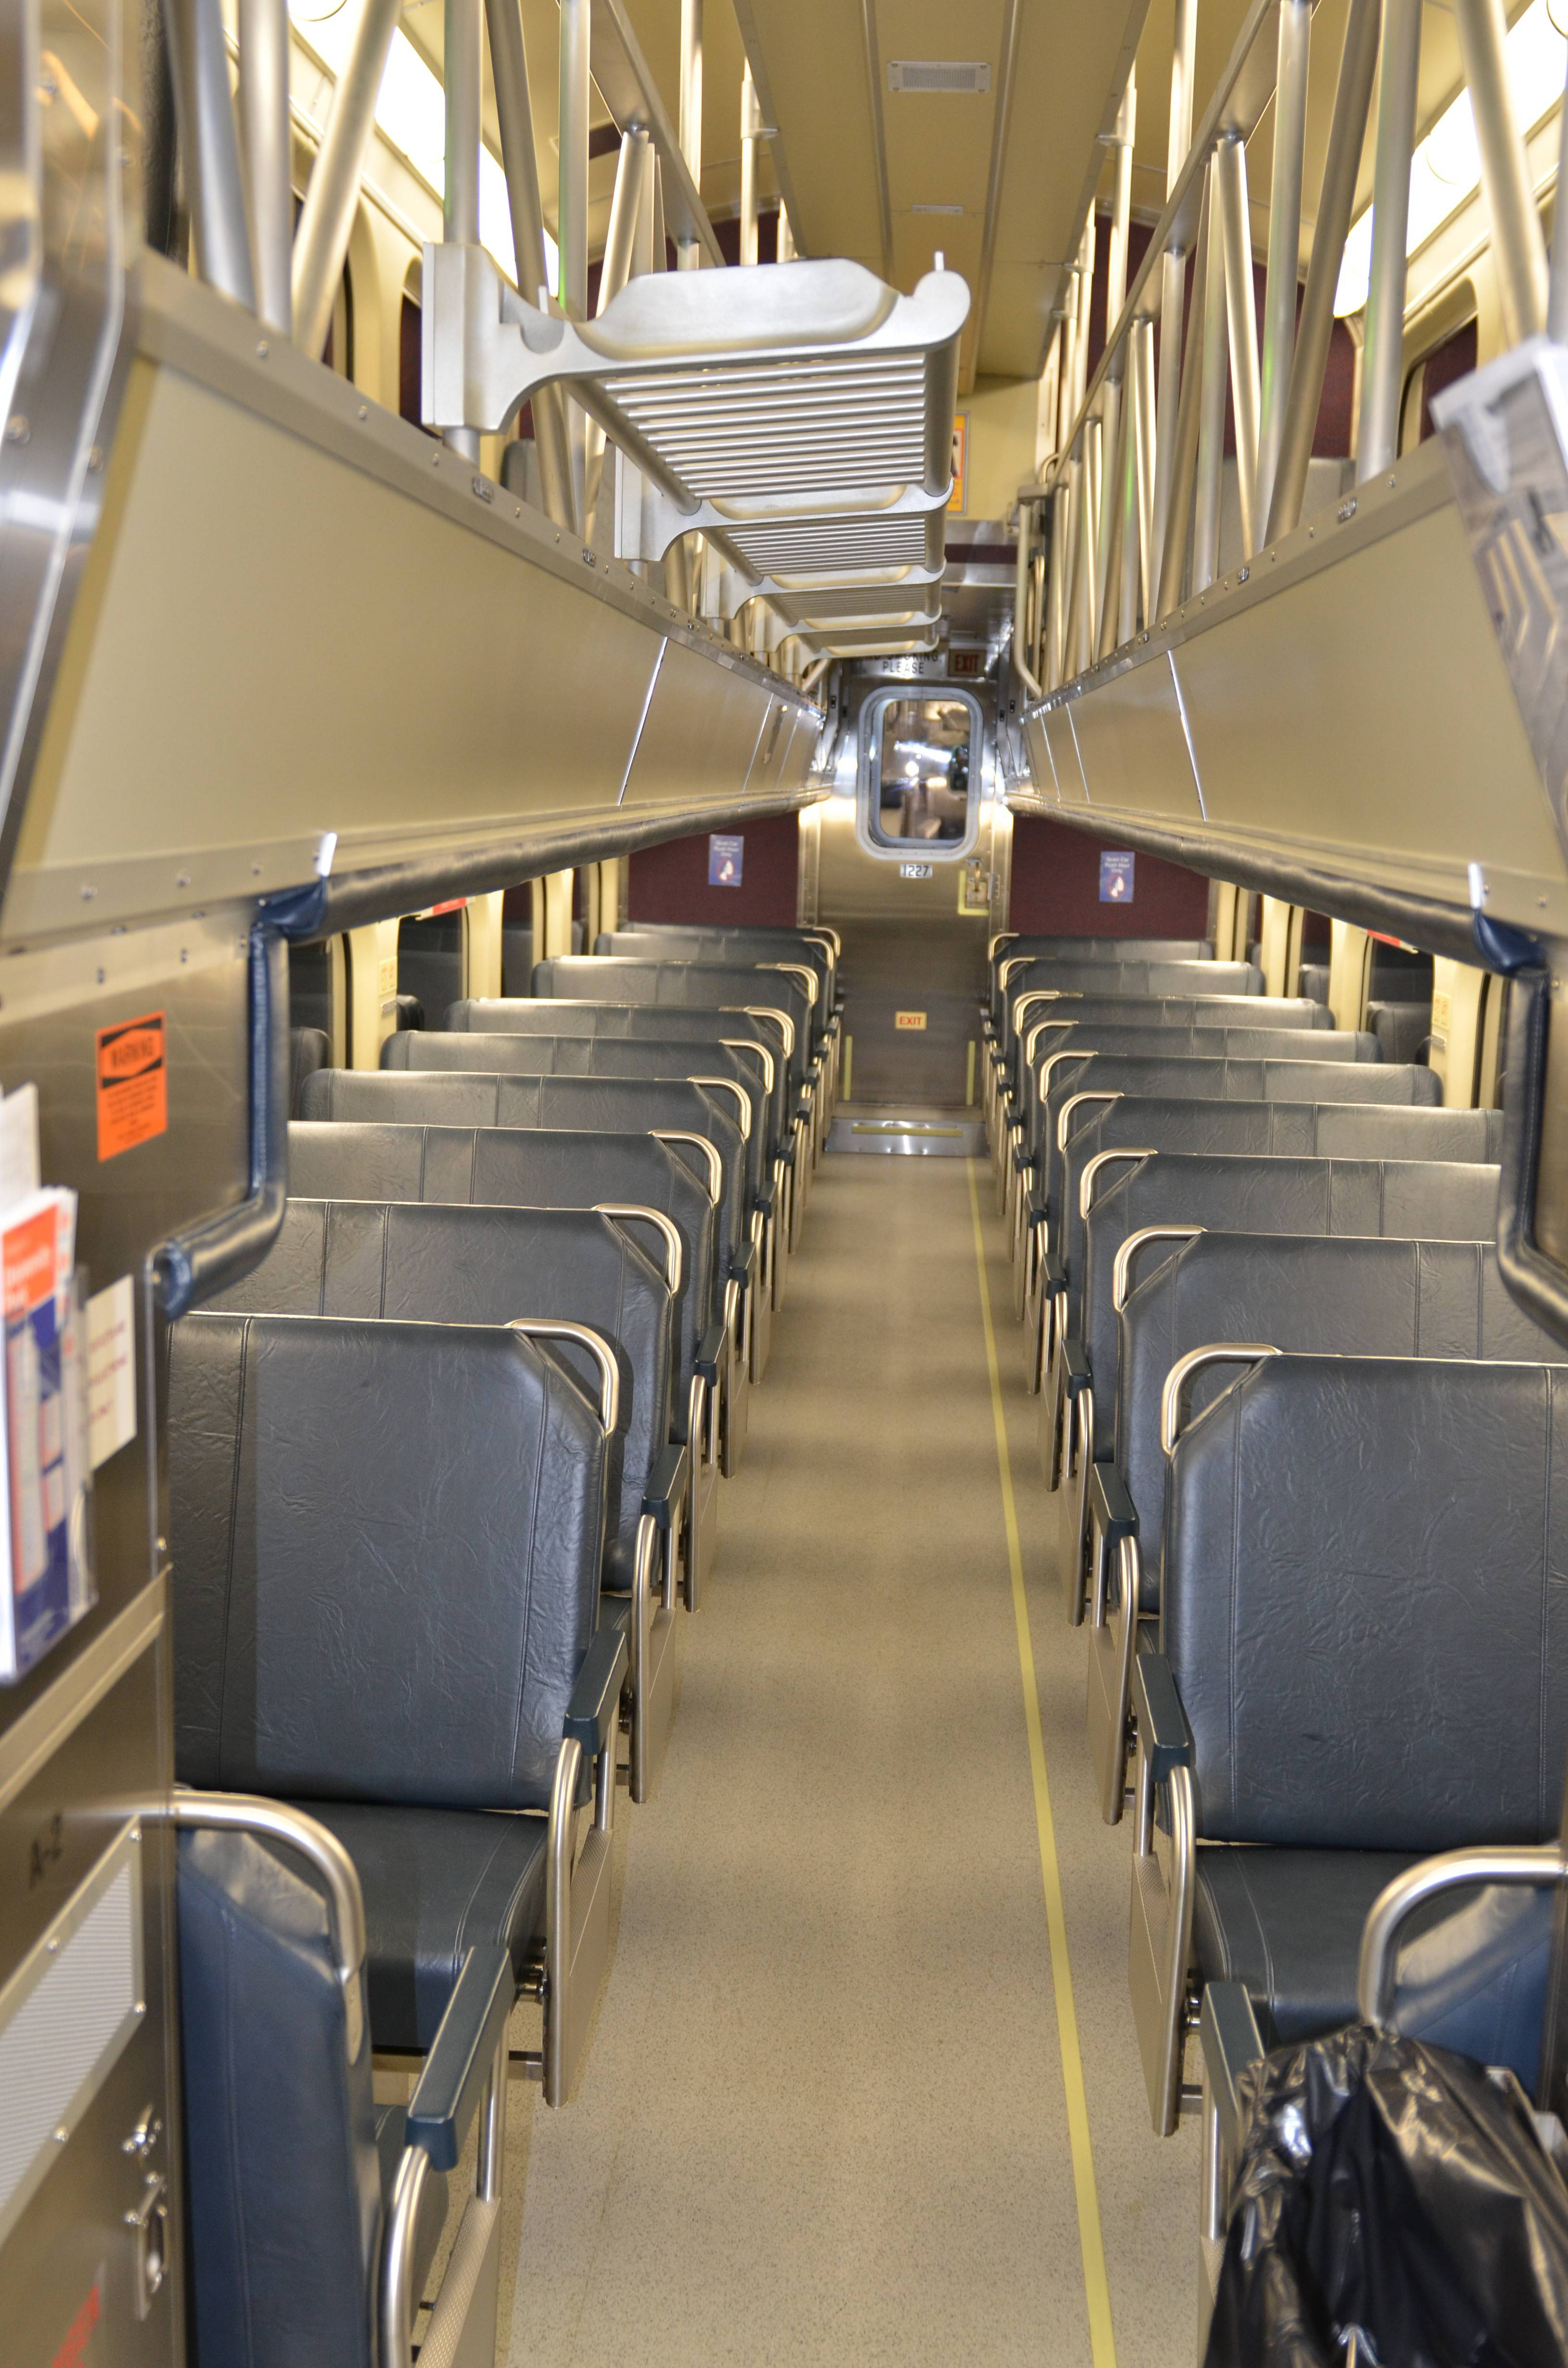 Metra expects to rehab 43 old cars this year.